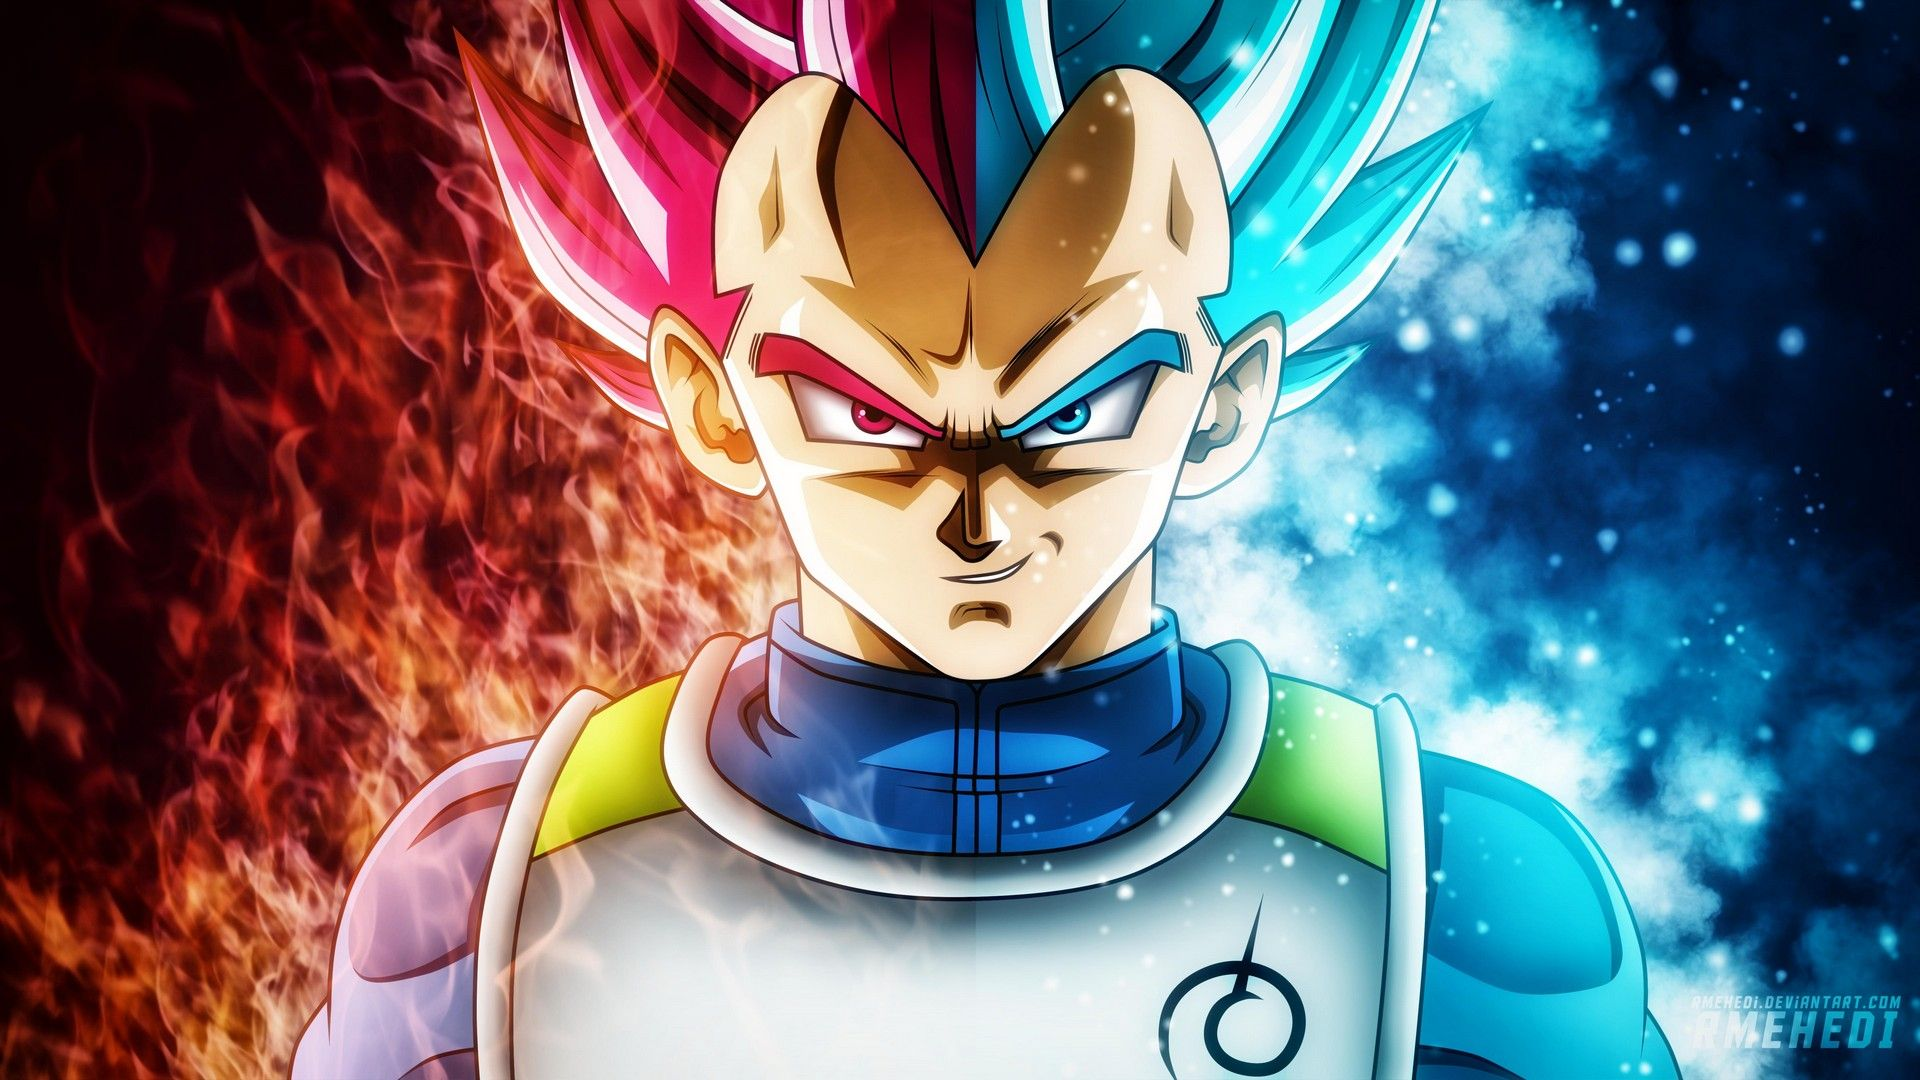 Dragon Ball Super Vegeta Wallpaper